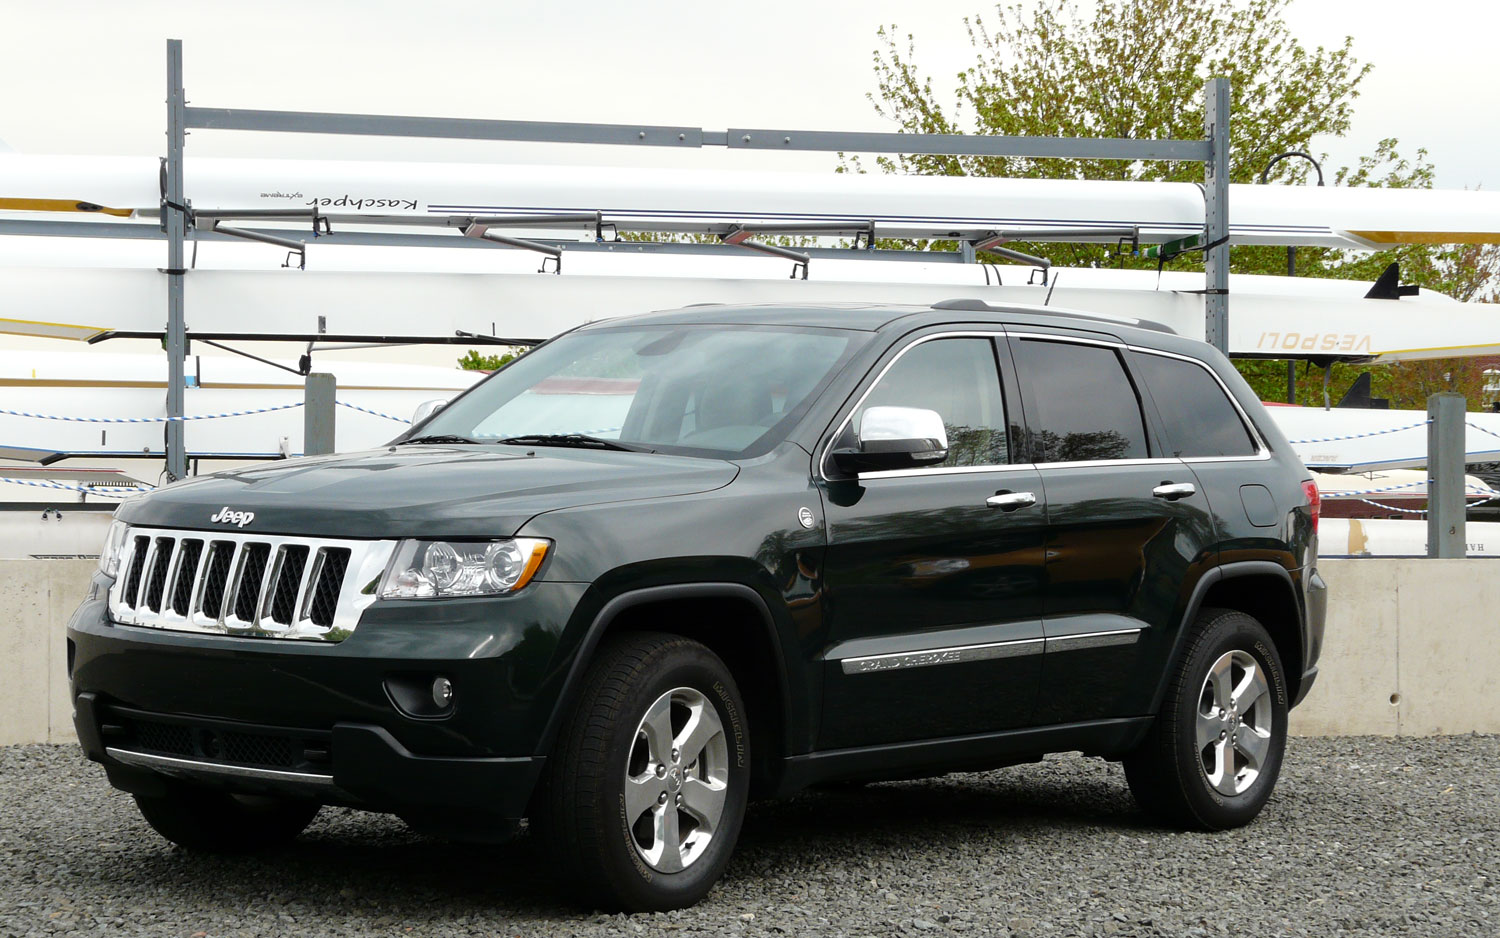 2011 Jeep Grand Cherokee Overland 4x4 Front Left Side View